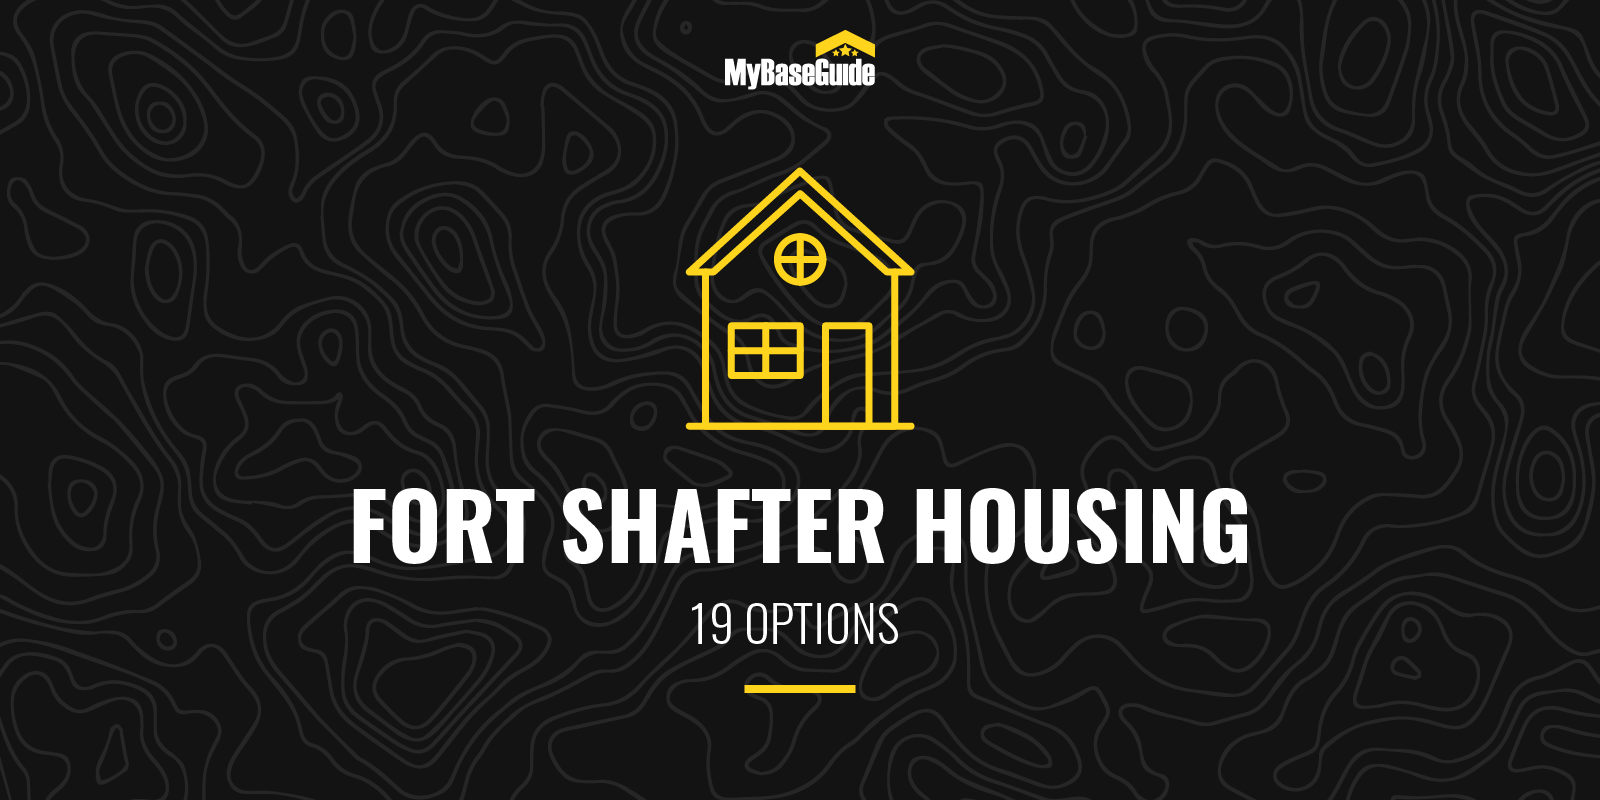 19 Fort Shafter Housing Options